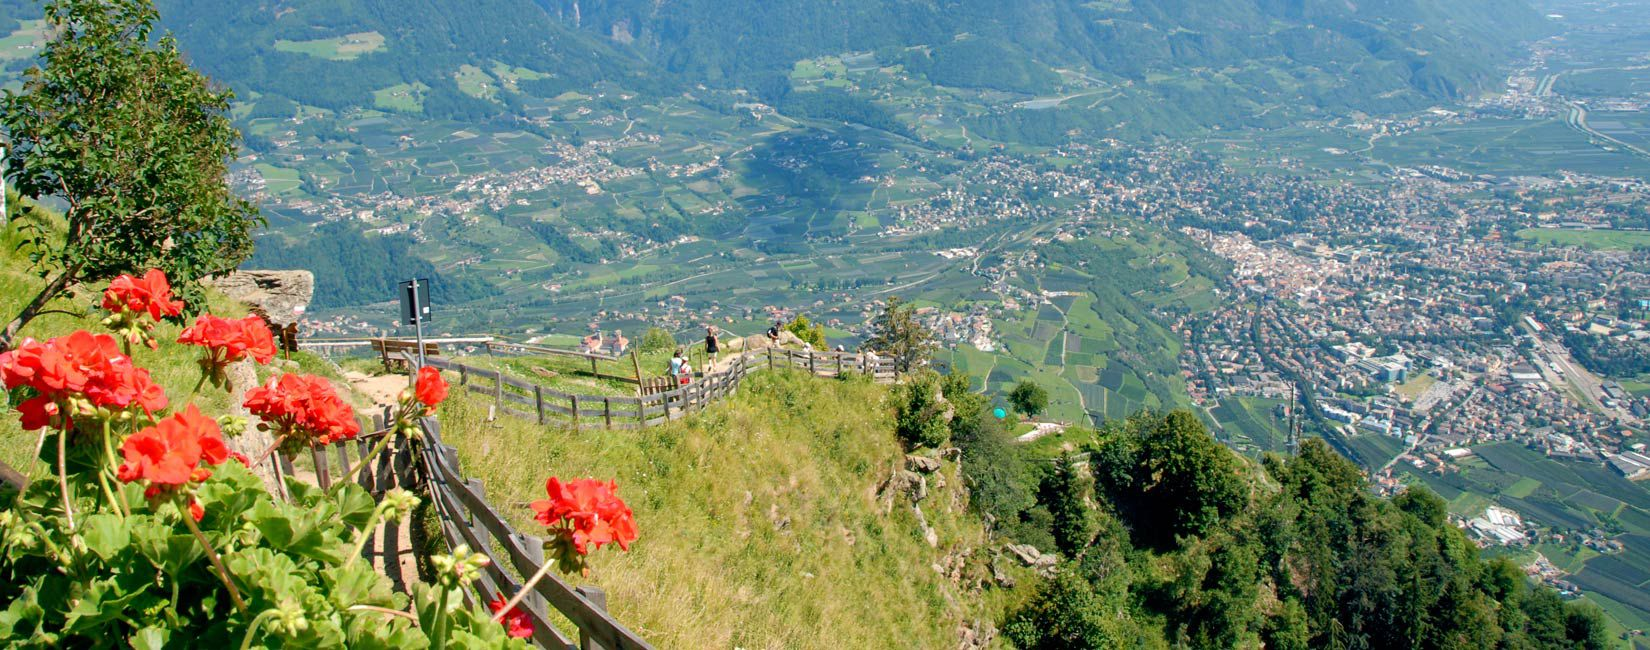 Shopping and weekly markets in Merano and the surrounding area